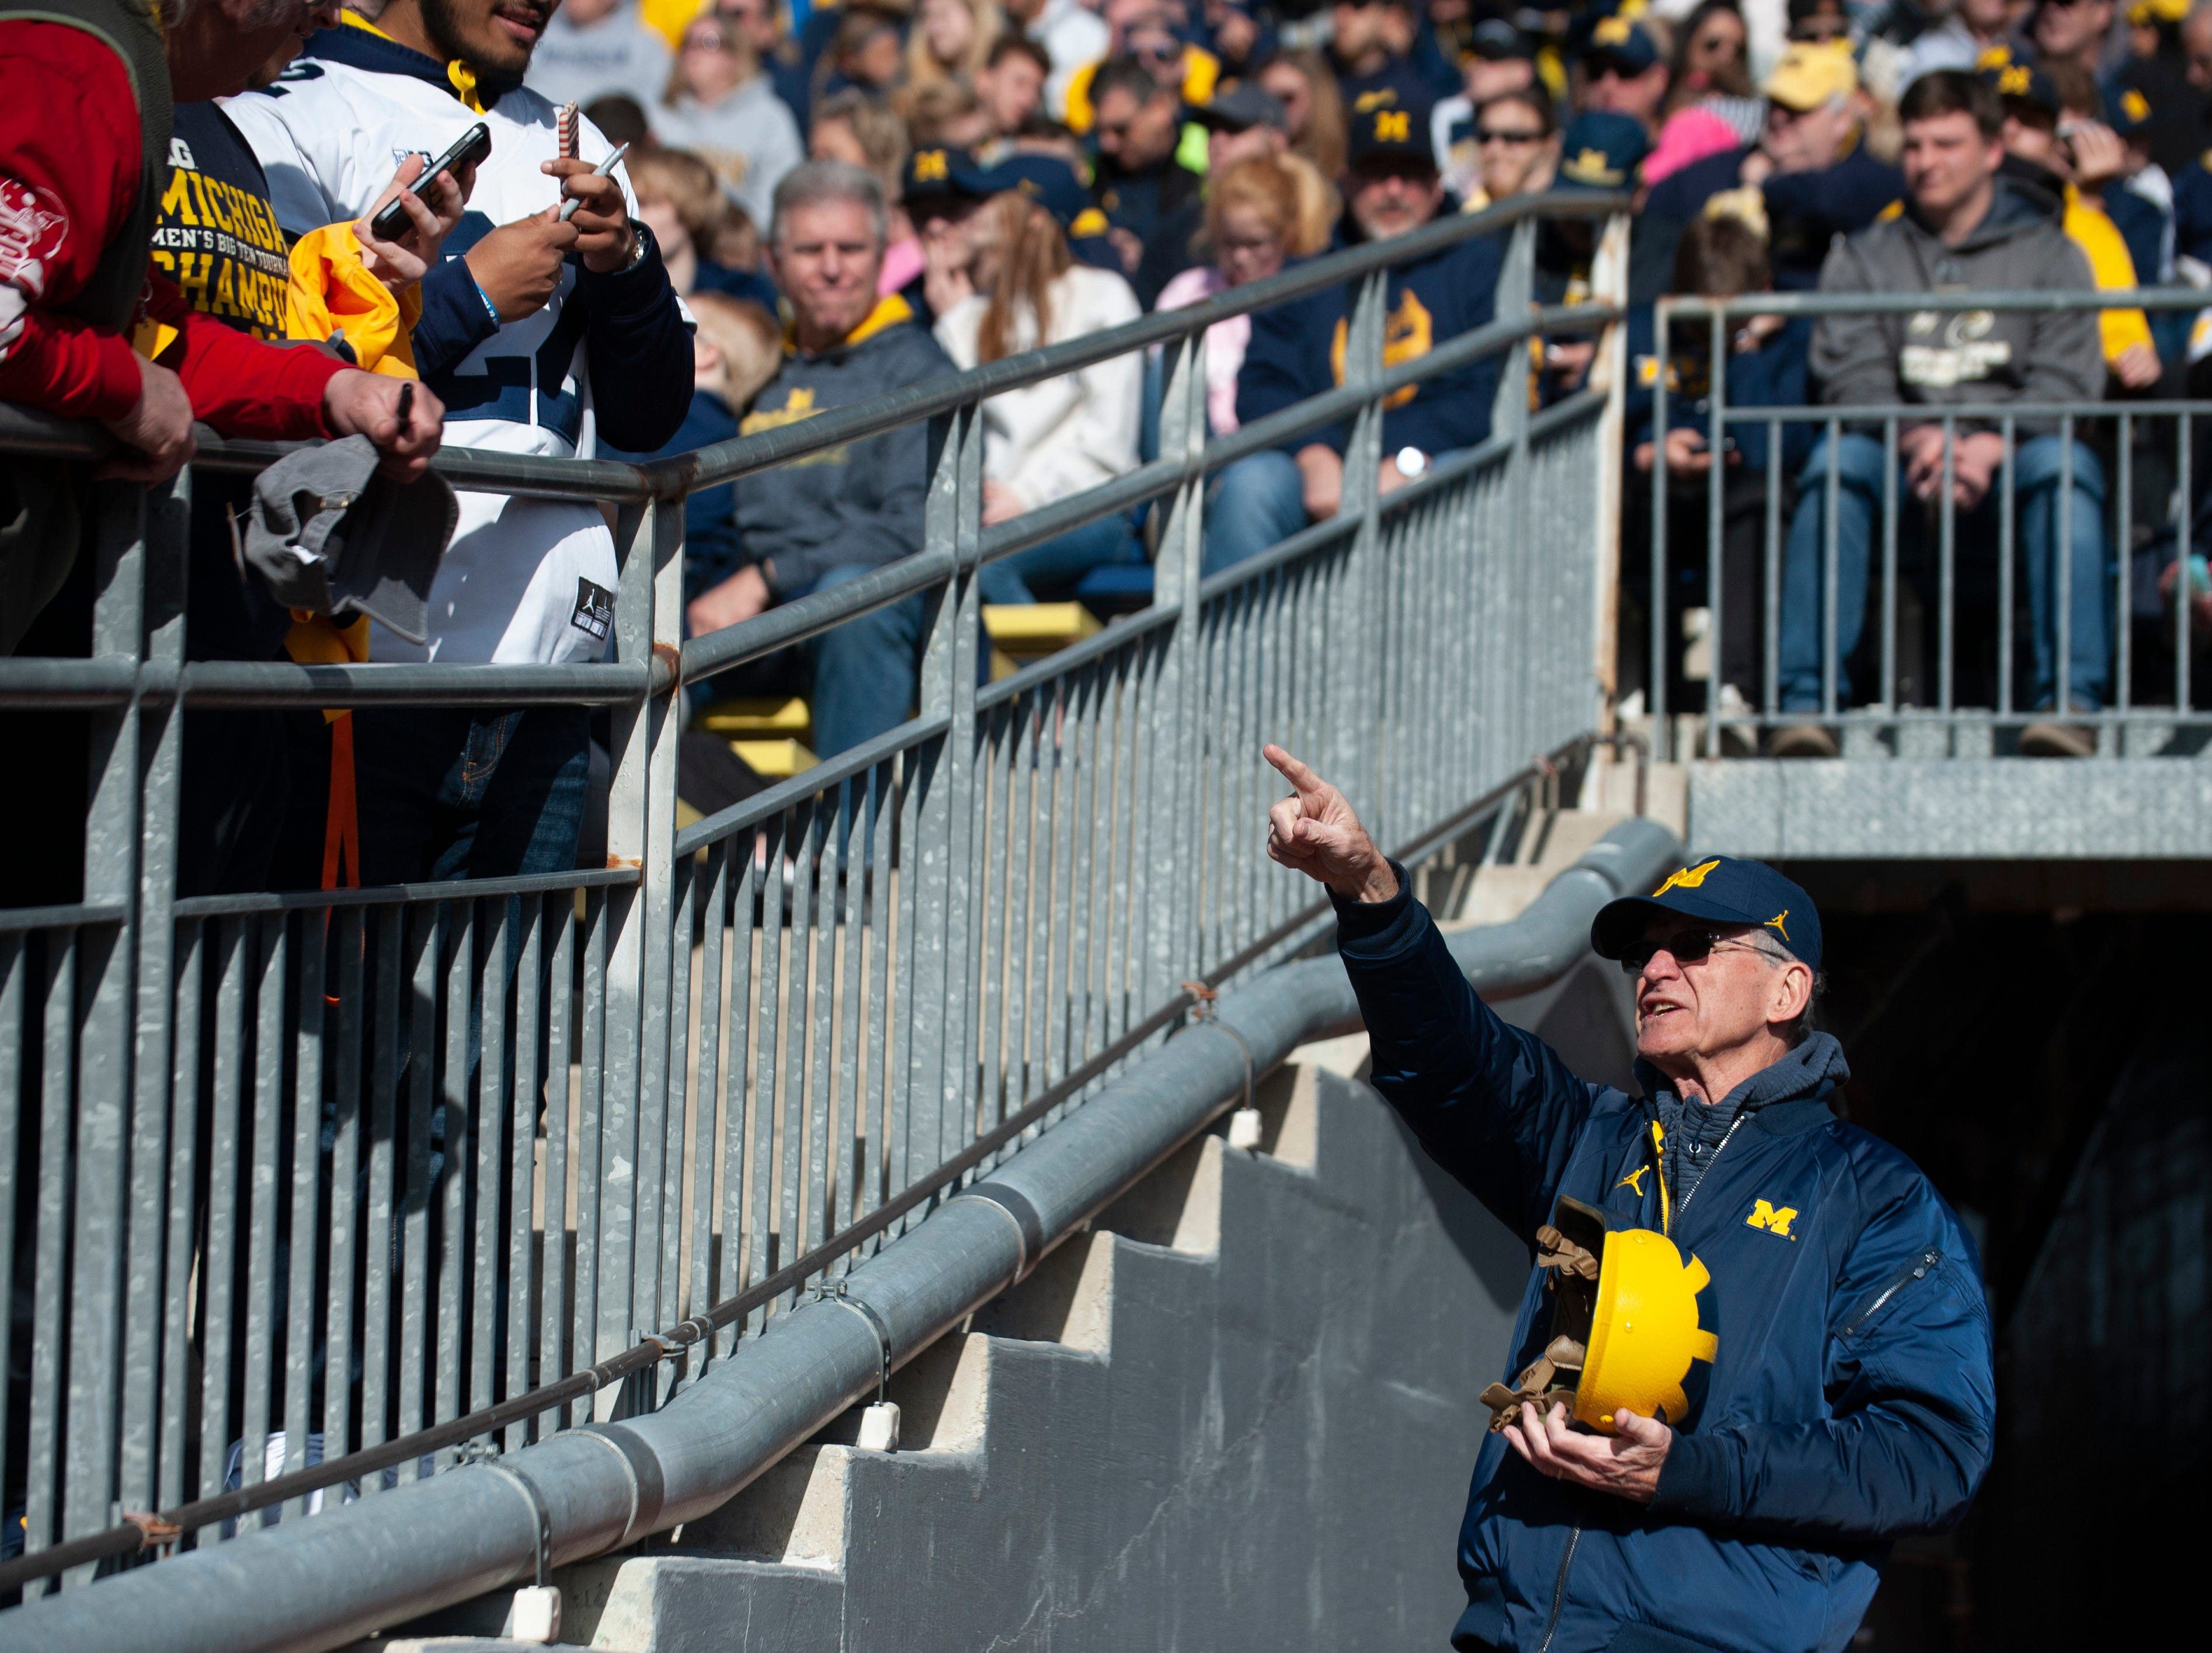 Jack Harbaugh, father of Michigan head coach Jim Harbaugh, points to fans at the entrance to the Michigan Stadium tunnel.